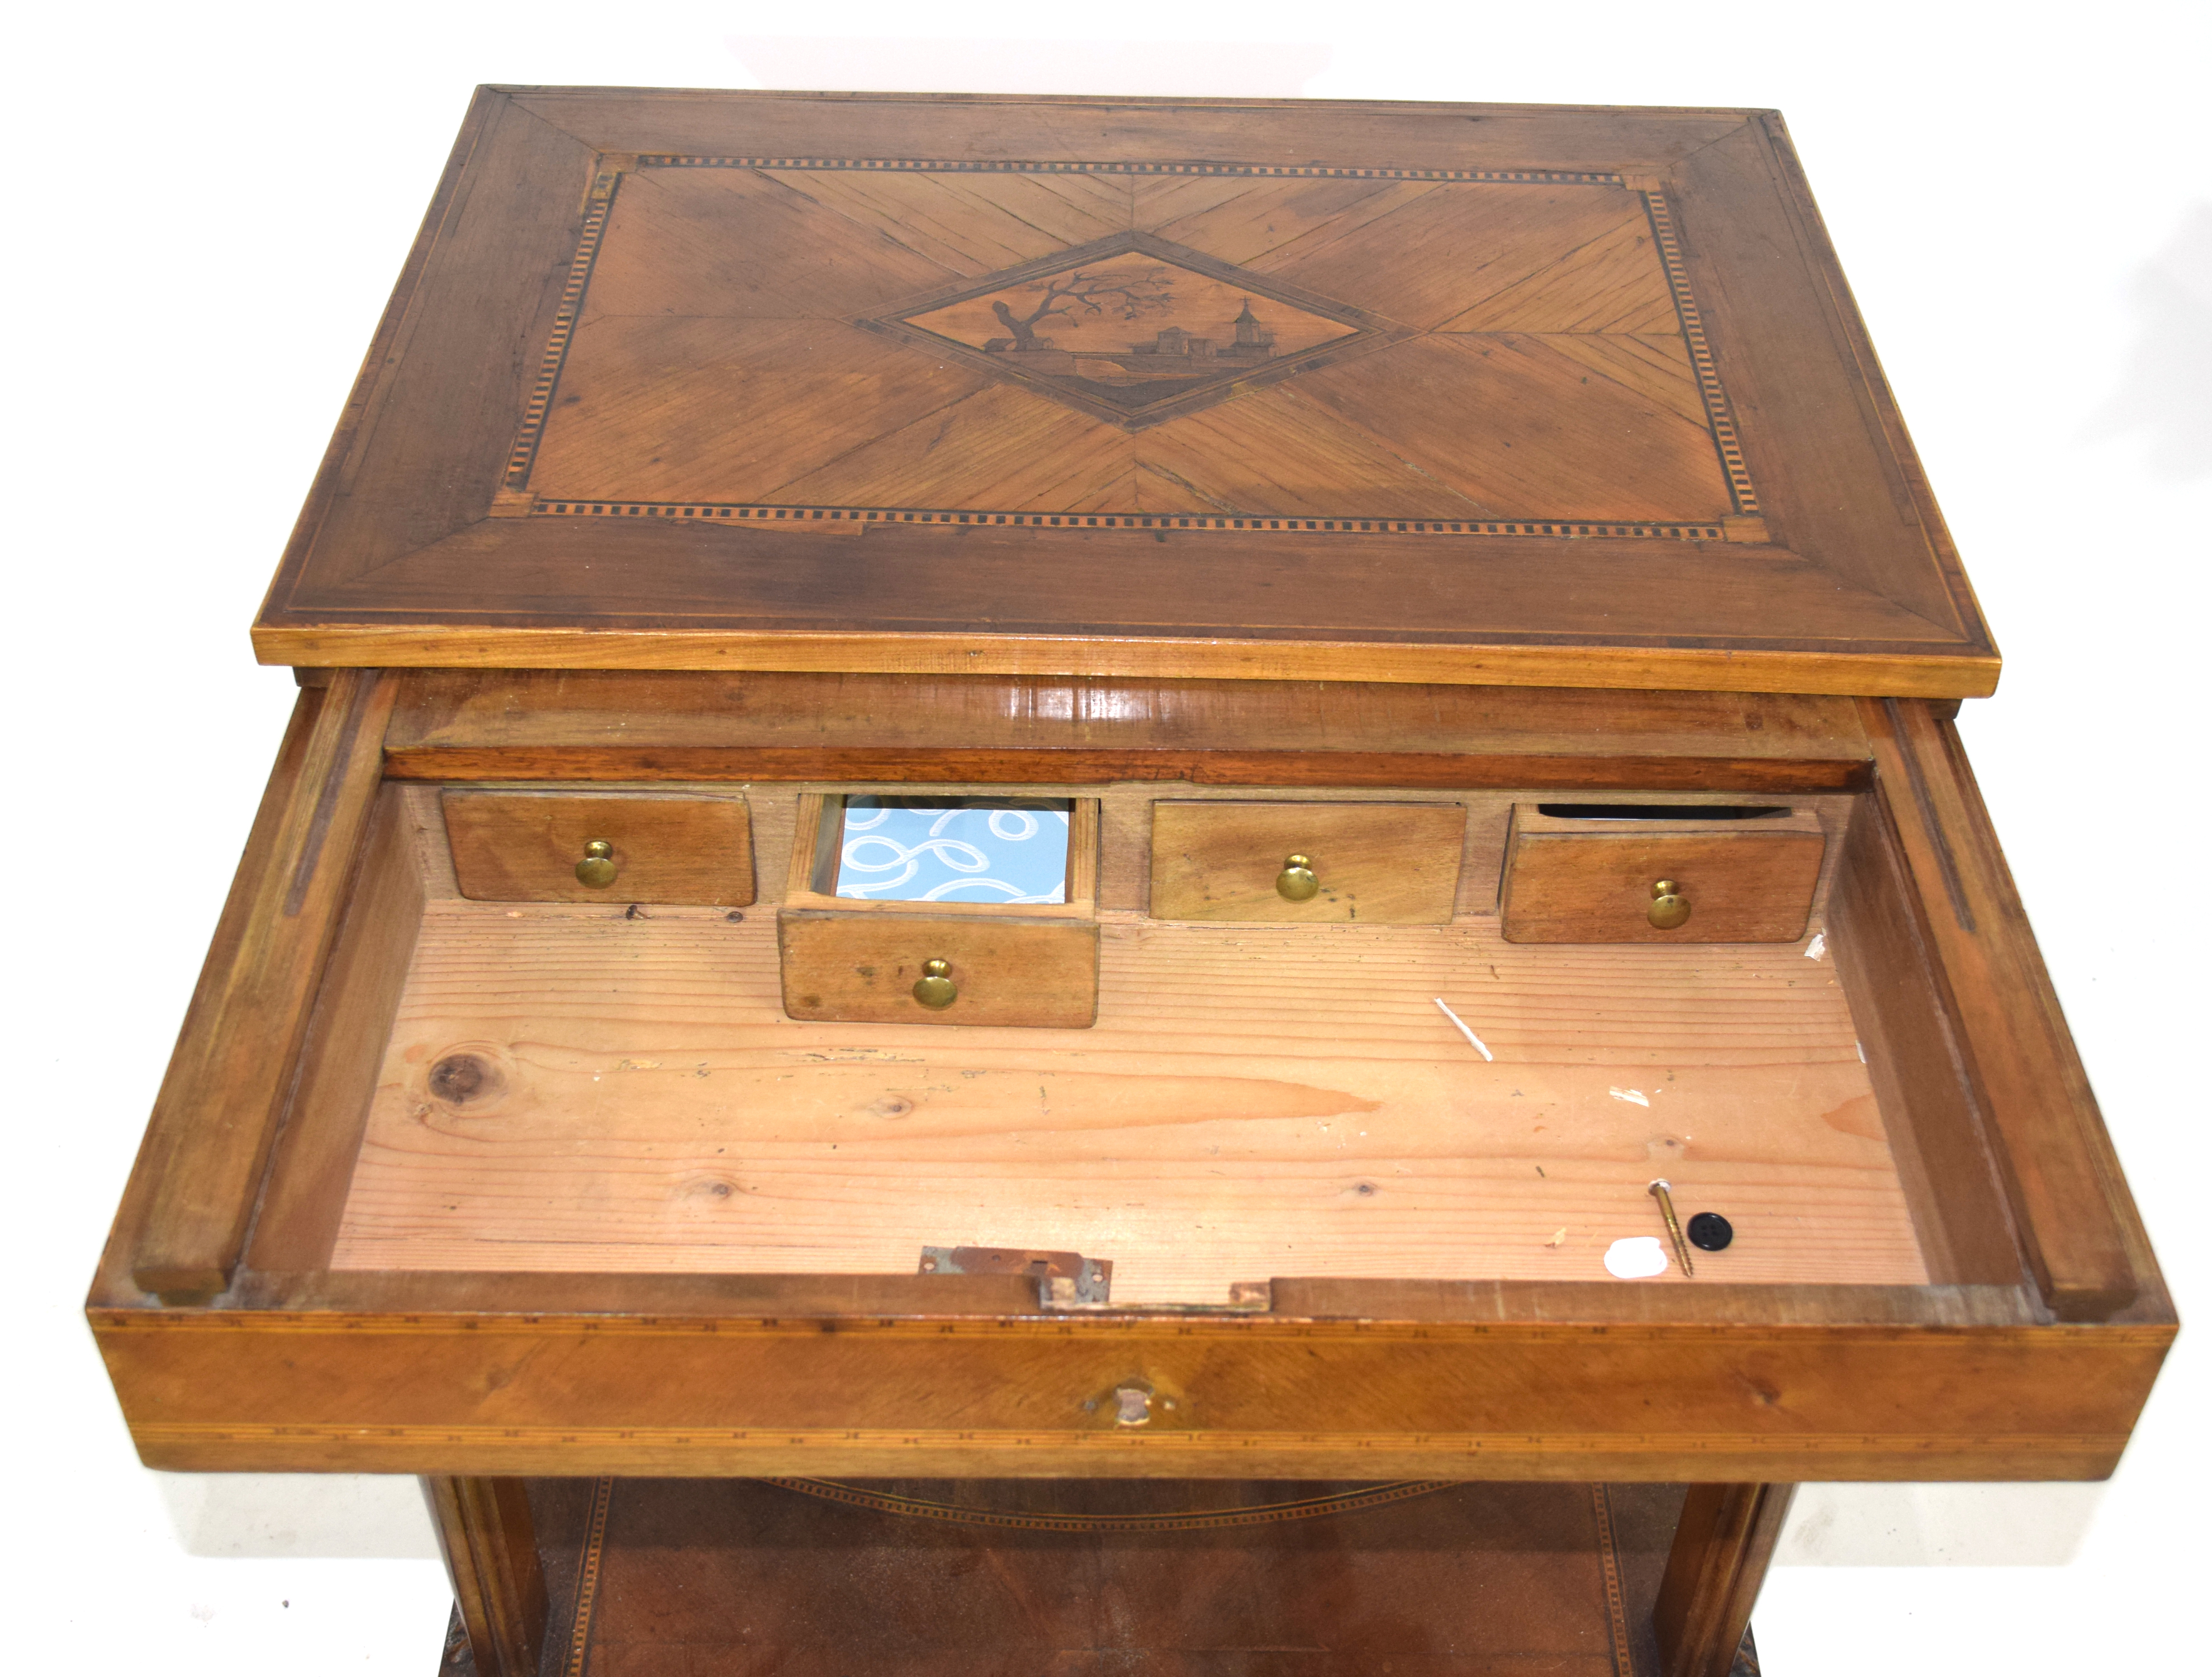 19th century Continental metamorphic desk or work table, the inlaid sliding top opening to reveal - Image 4 of 4